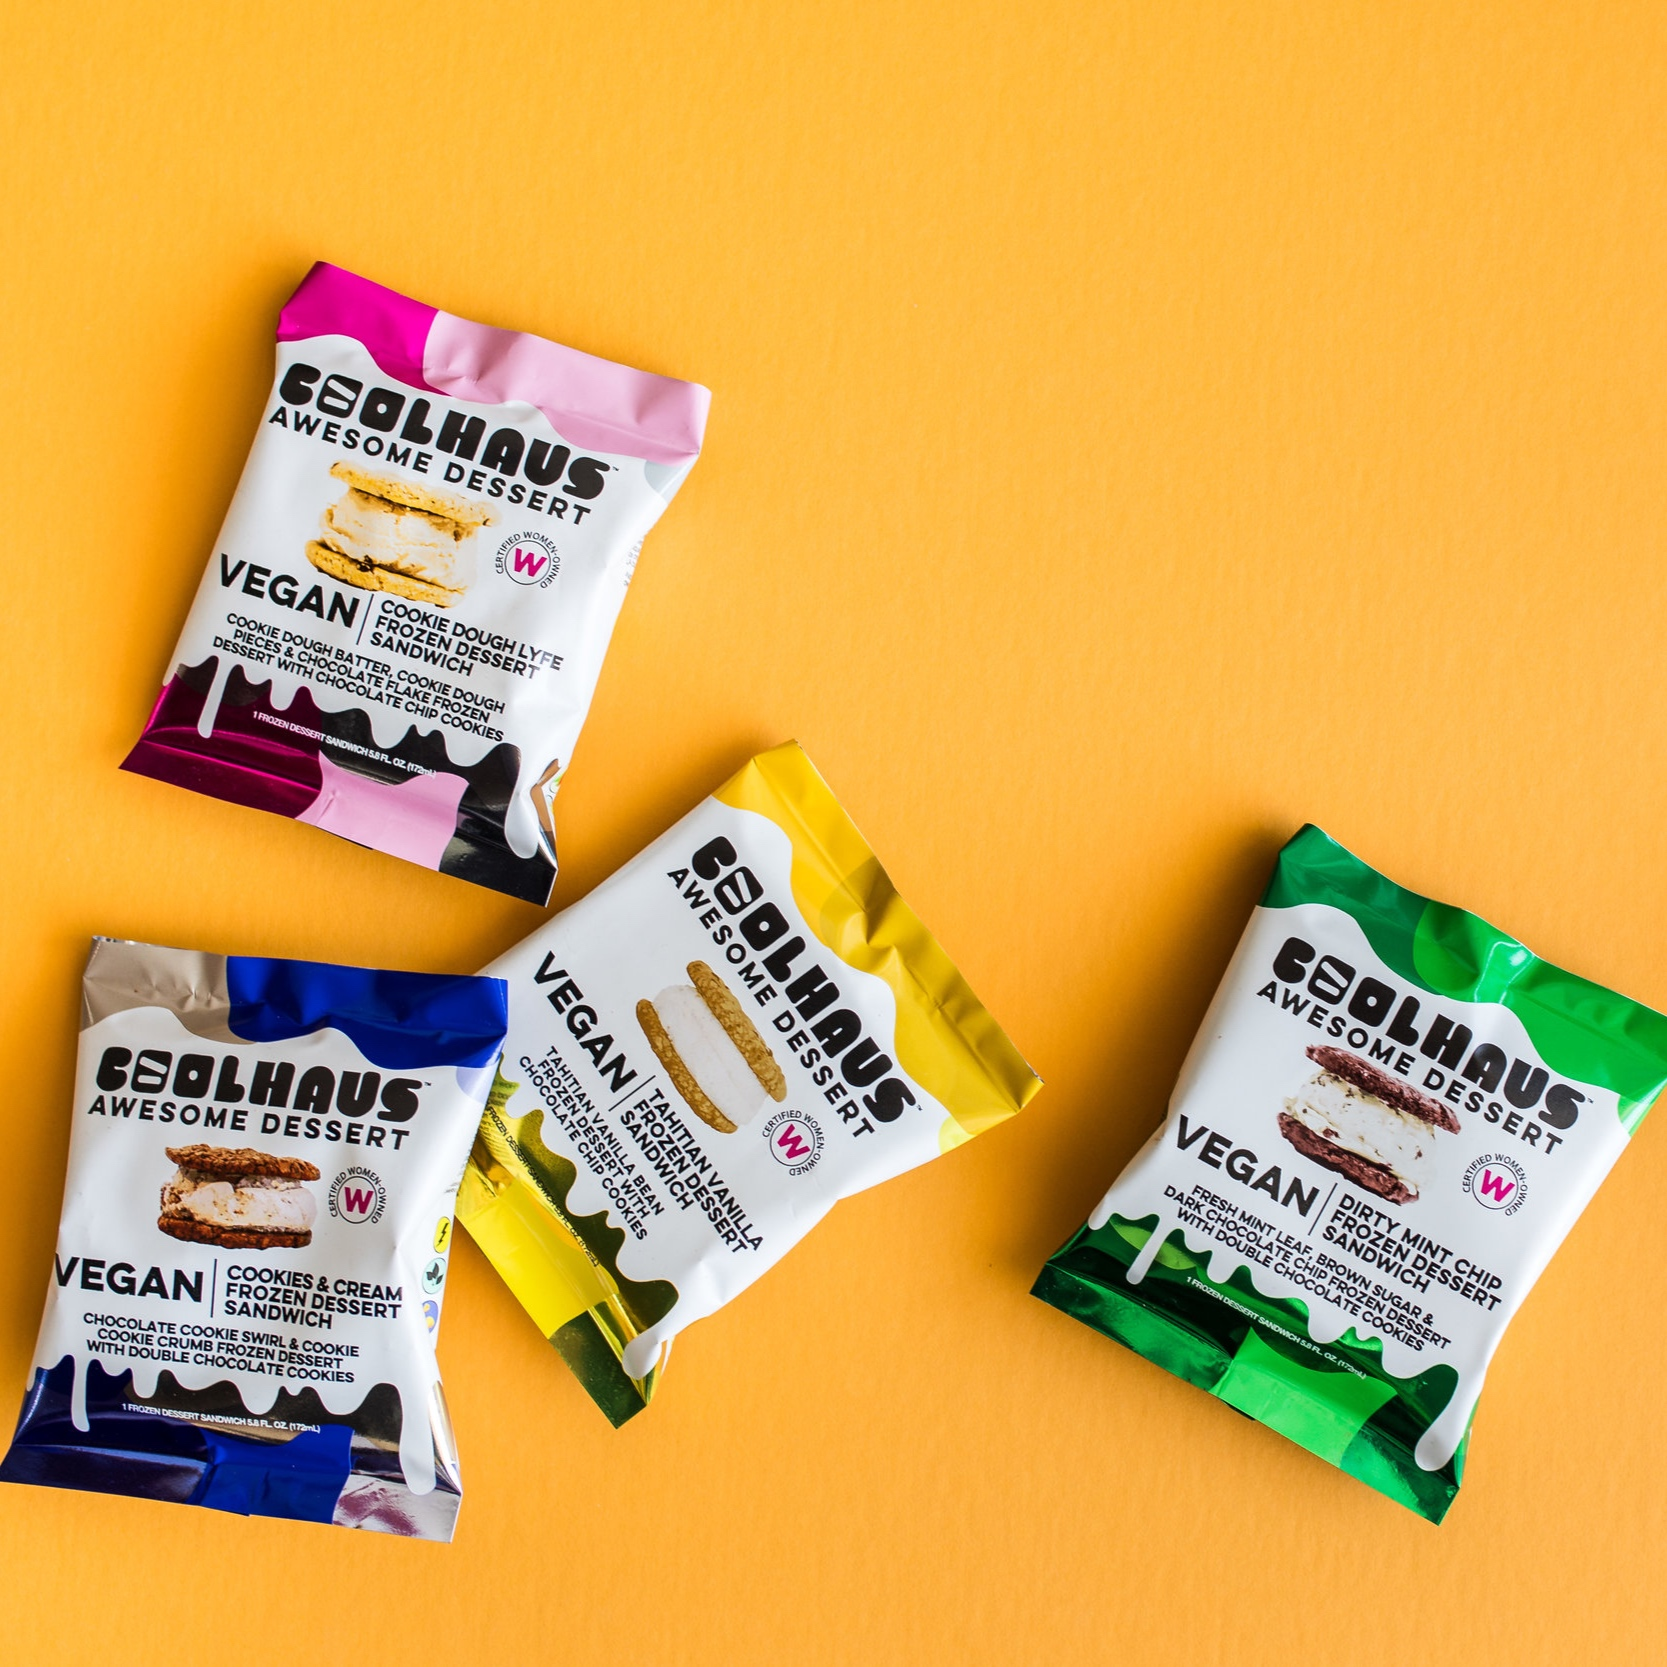 Coolhaus Ice Cream Product Photography